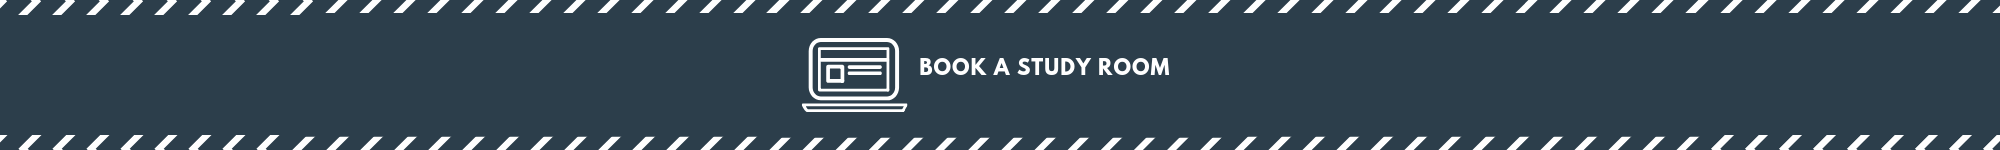 Book a Study Room Banner